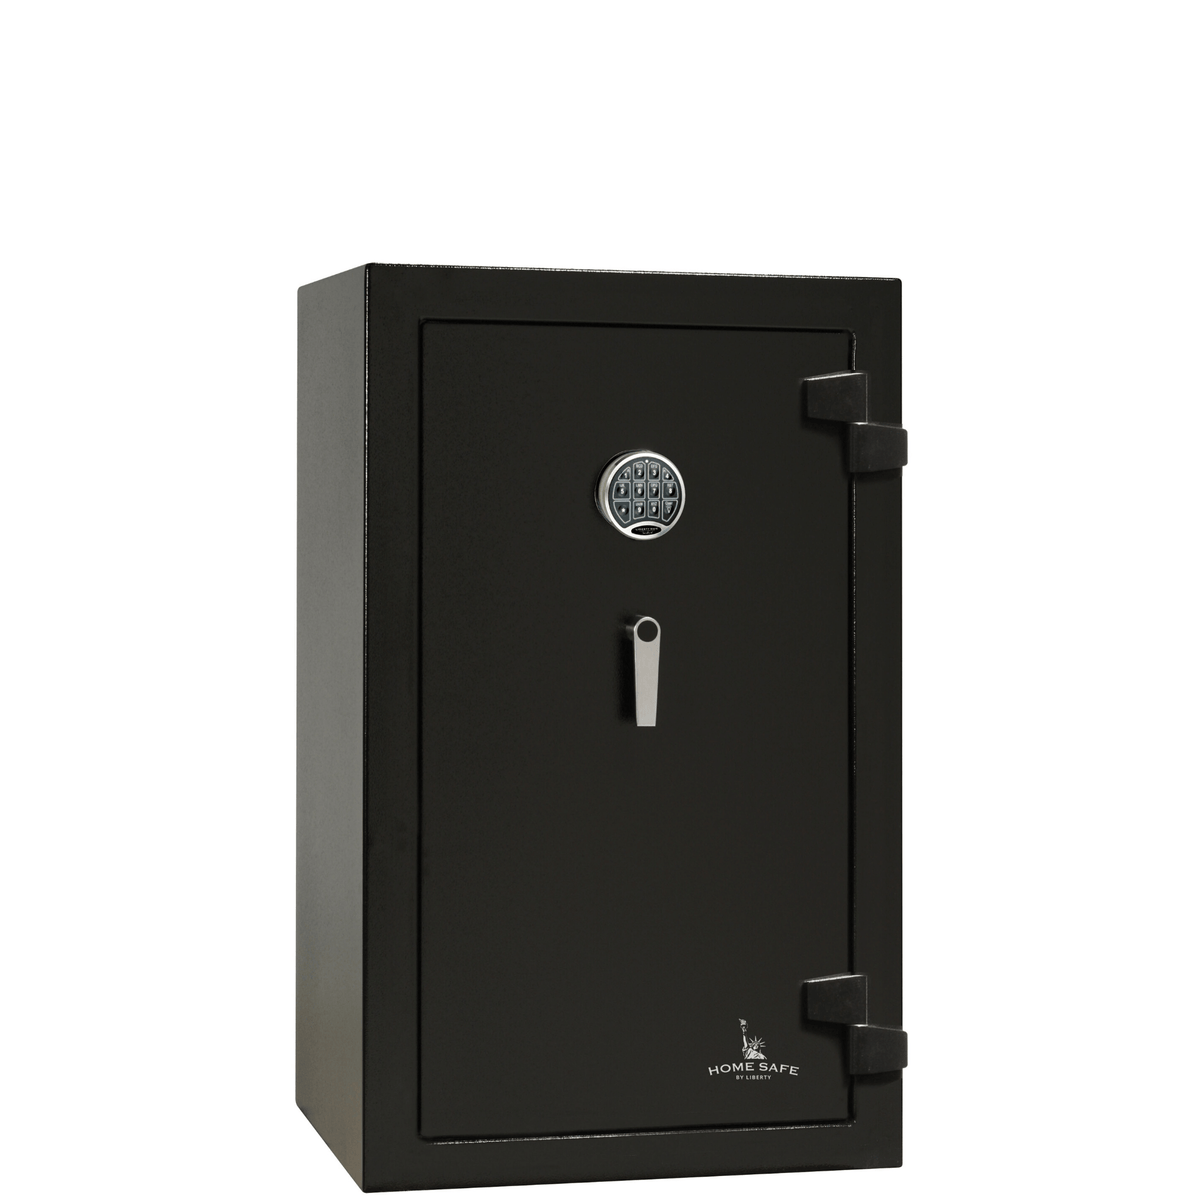 "Home Safe | 12 | 60 Minute Fire Protection | Black | Electronic Lock | Dimensions: 42""(H) x 24.25""(W) x 22""(D)."